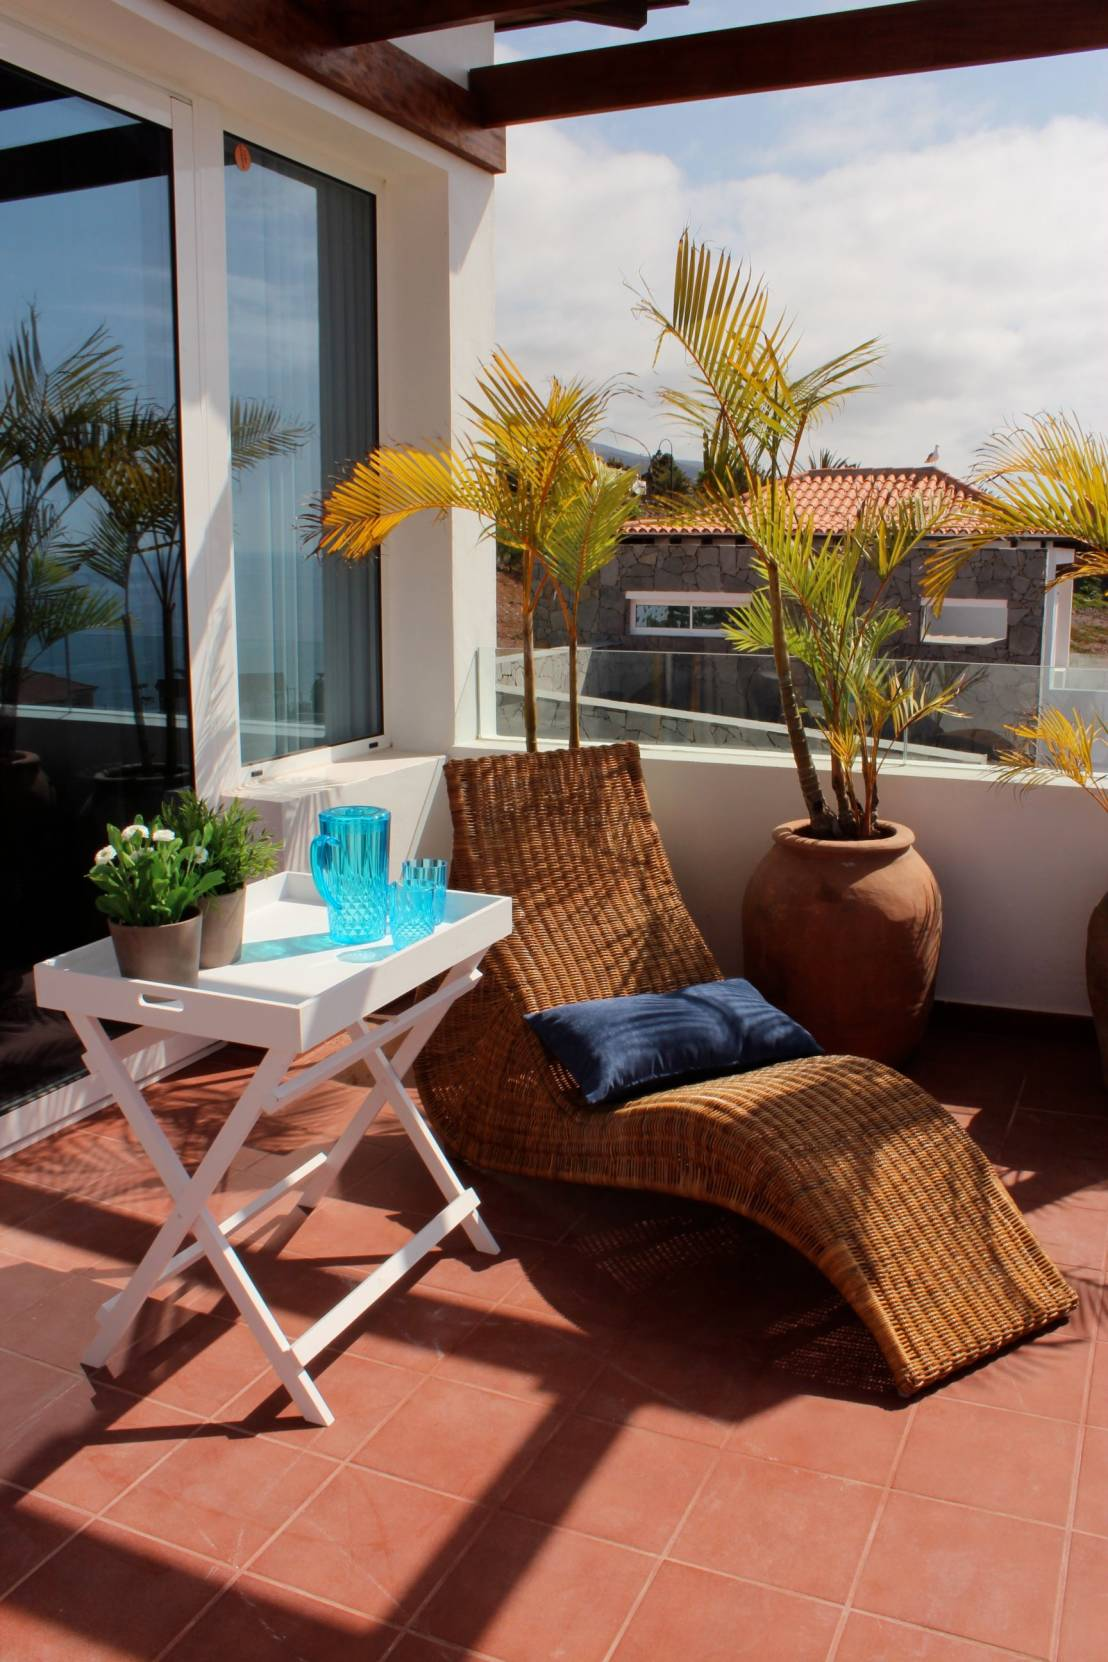 7 grandes ideas para balcones y terrazas peque as for Idea jardineria terraza balcon